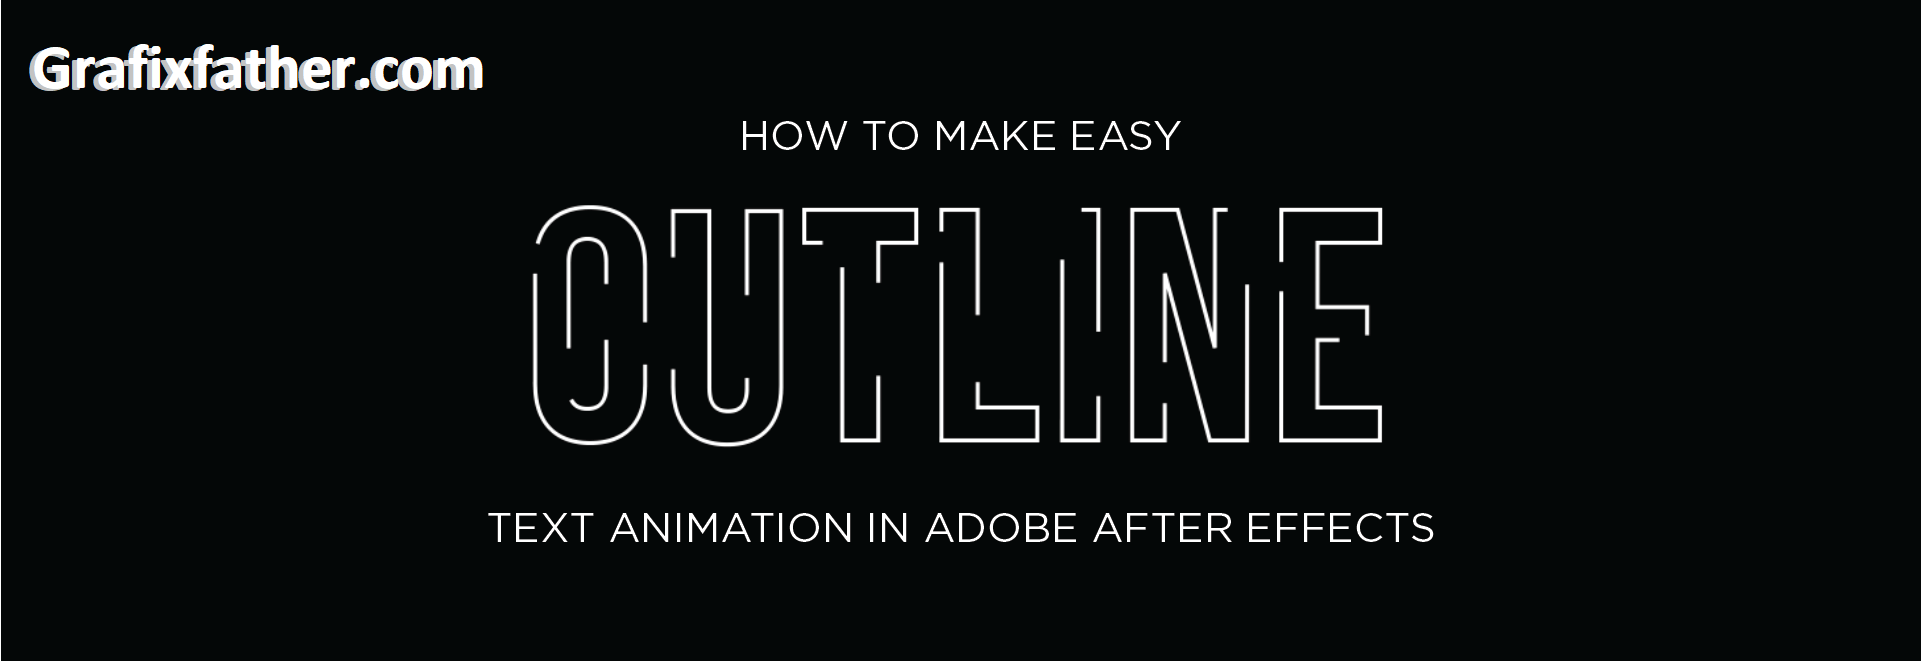 Easy Outline Text Animation in Adobe After Effects